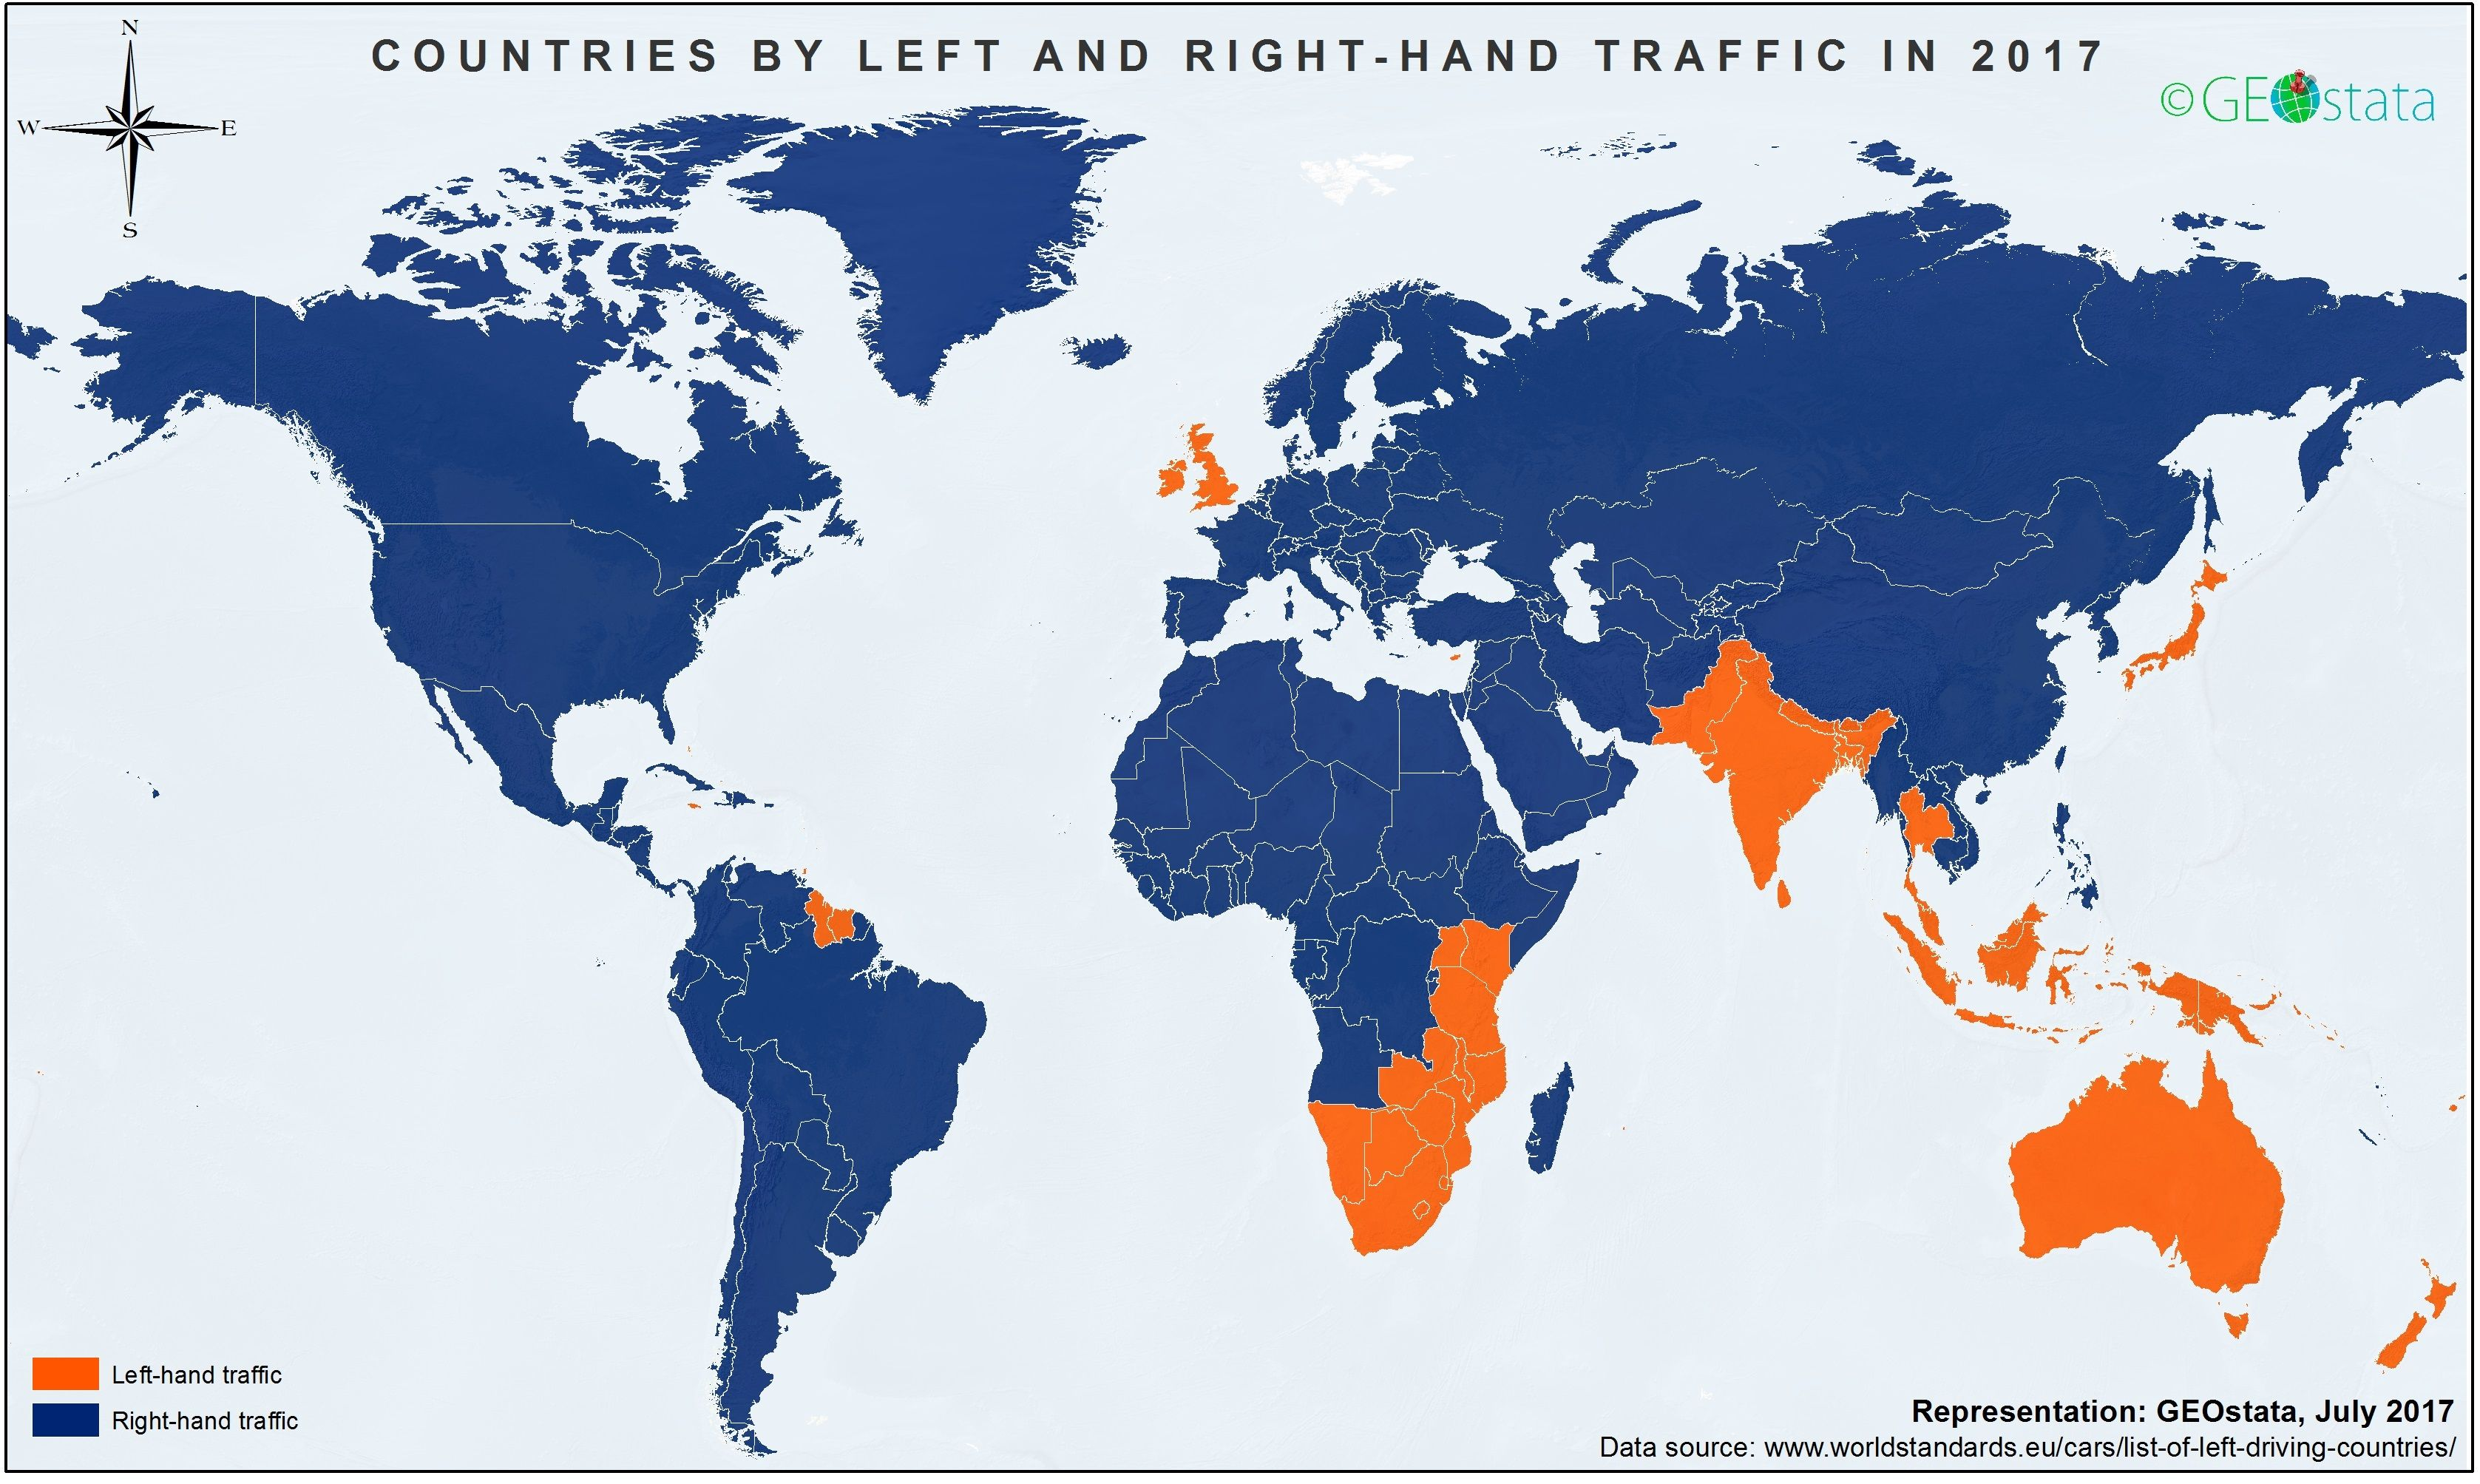 Left and right-hand traffic around the world (2017) | Left ... World Map Traffic on world airspace map, world drought map, world terrain map, world wind map, world weather map, world radar map, world land use map, world transport map, world pollution map, world drug map, world seismic map, world rail map, world gravity map, world railway map, world crime map, world flight map, world climate map, world heat map, world snowfall map, world road map,